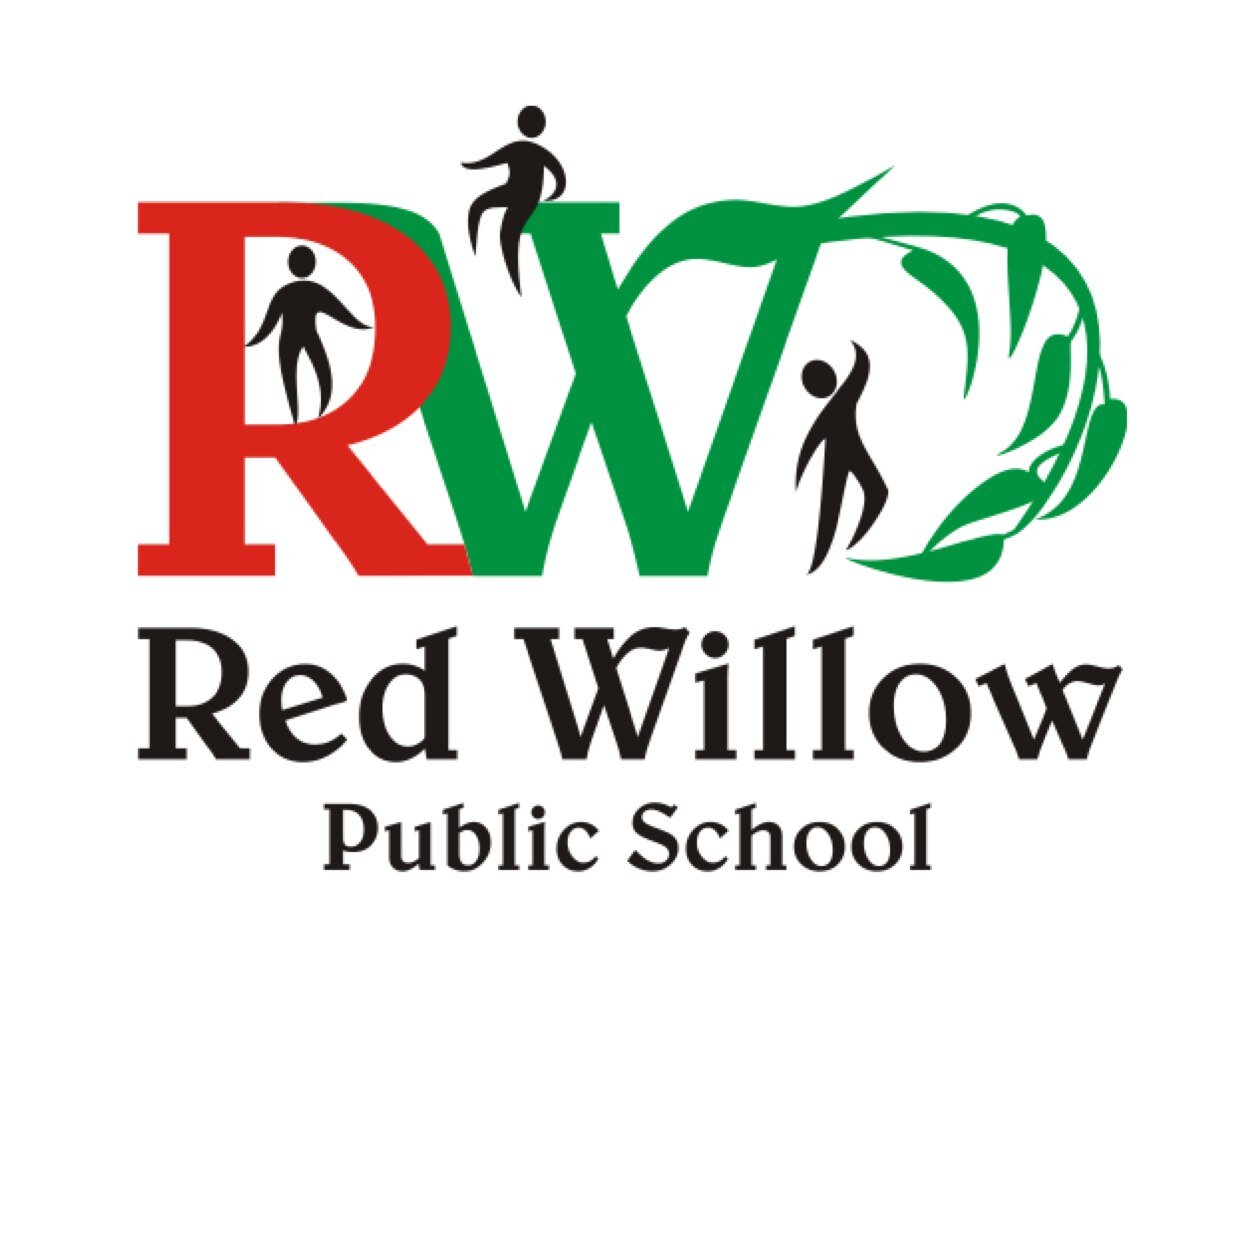 Red Willow PS على تويتر: